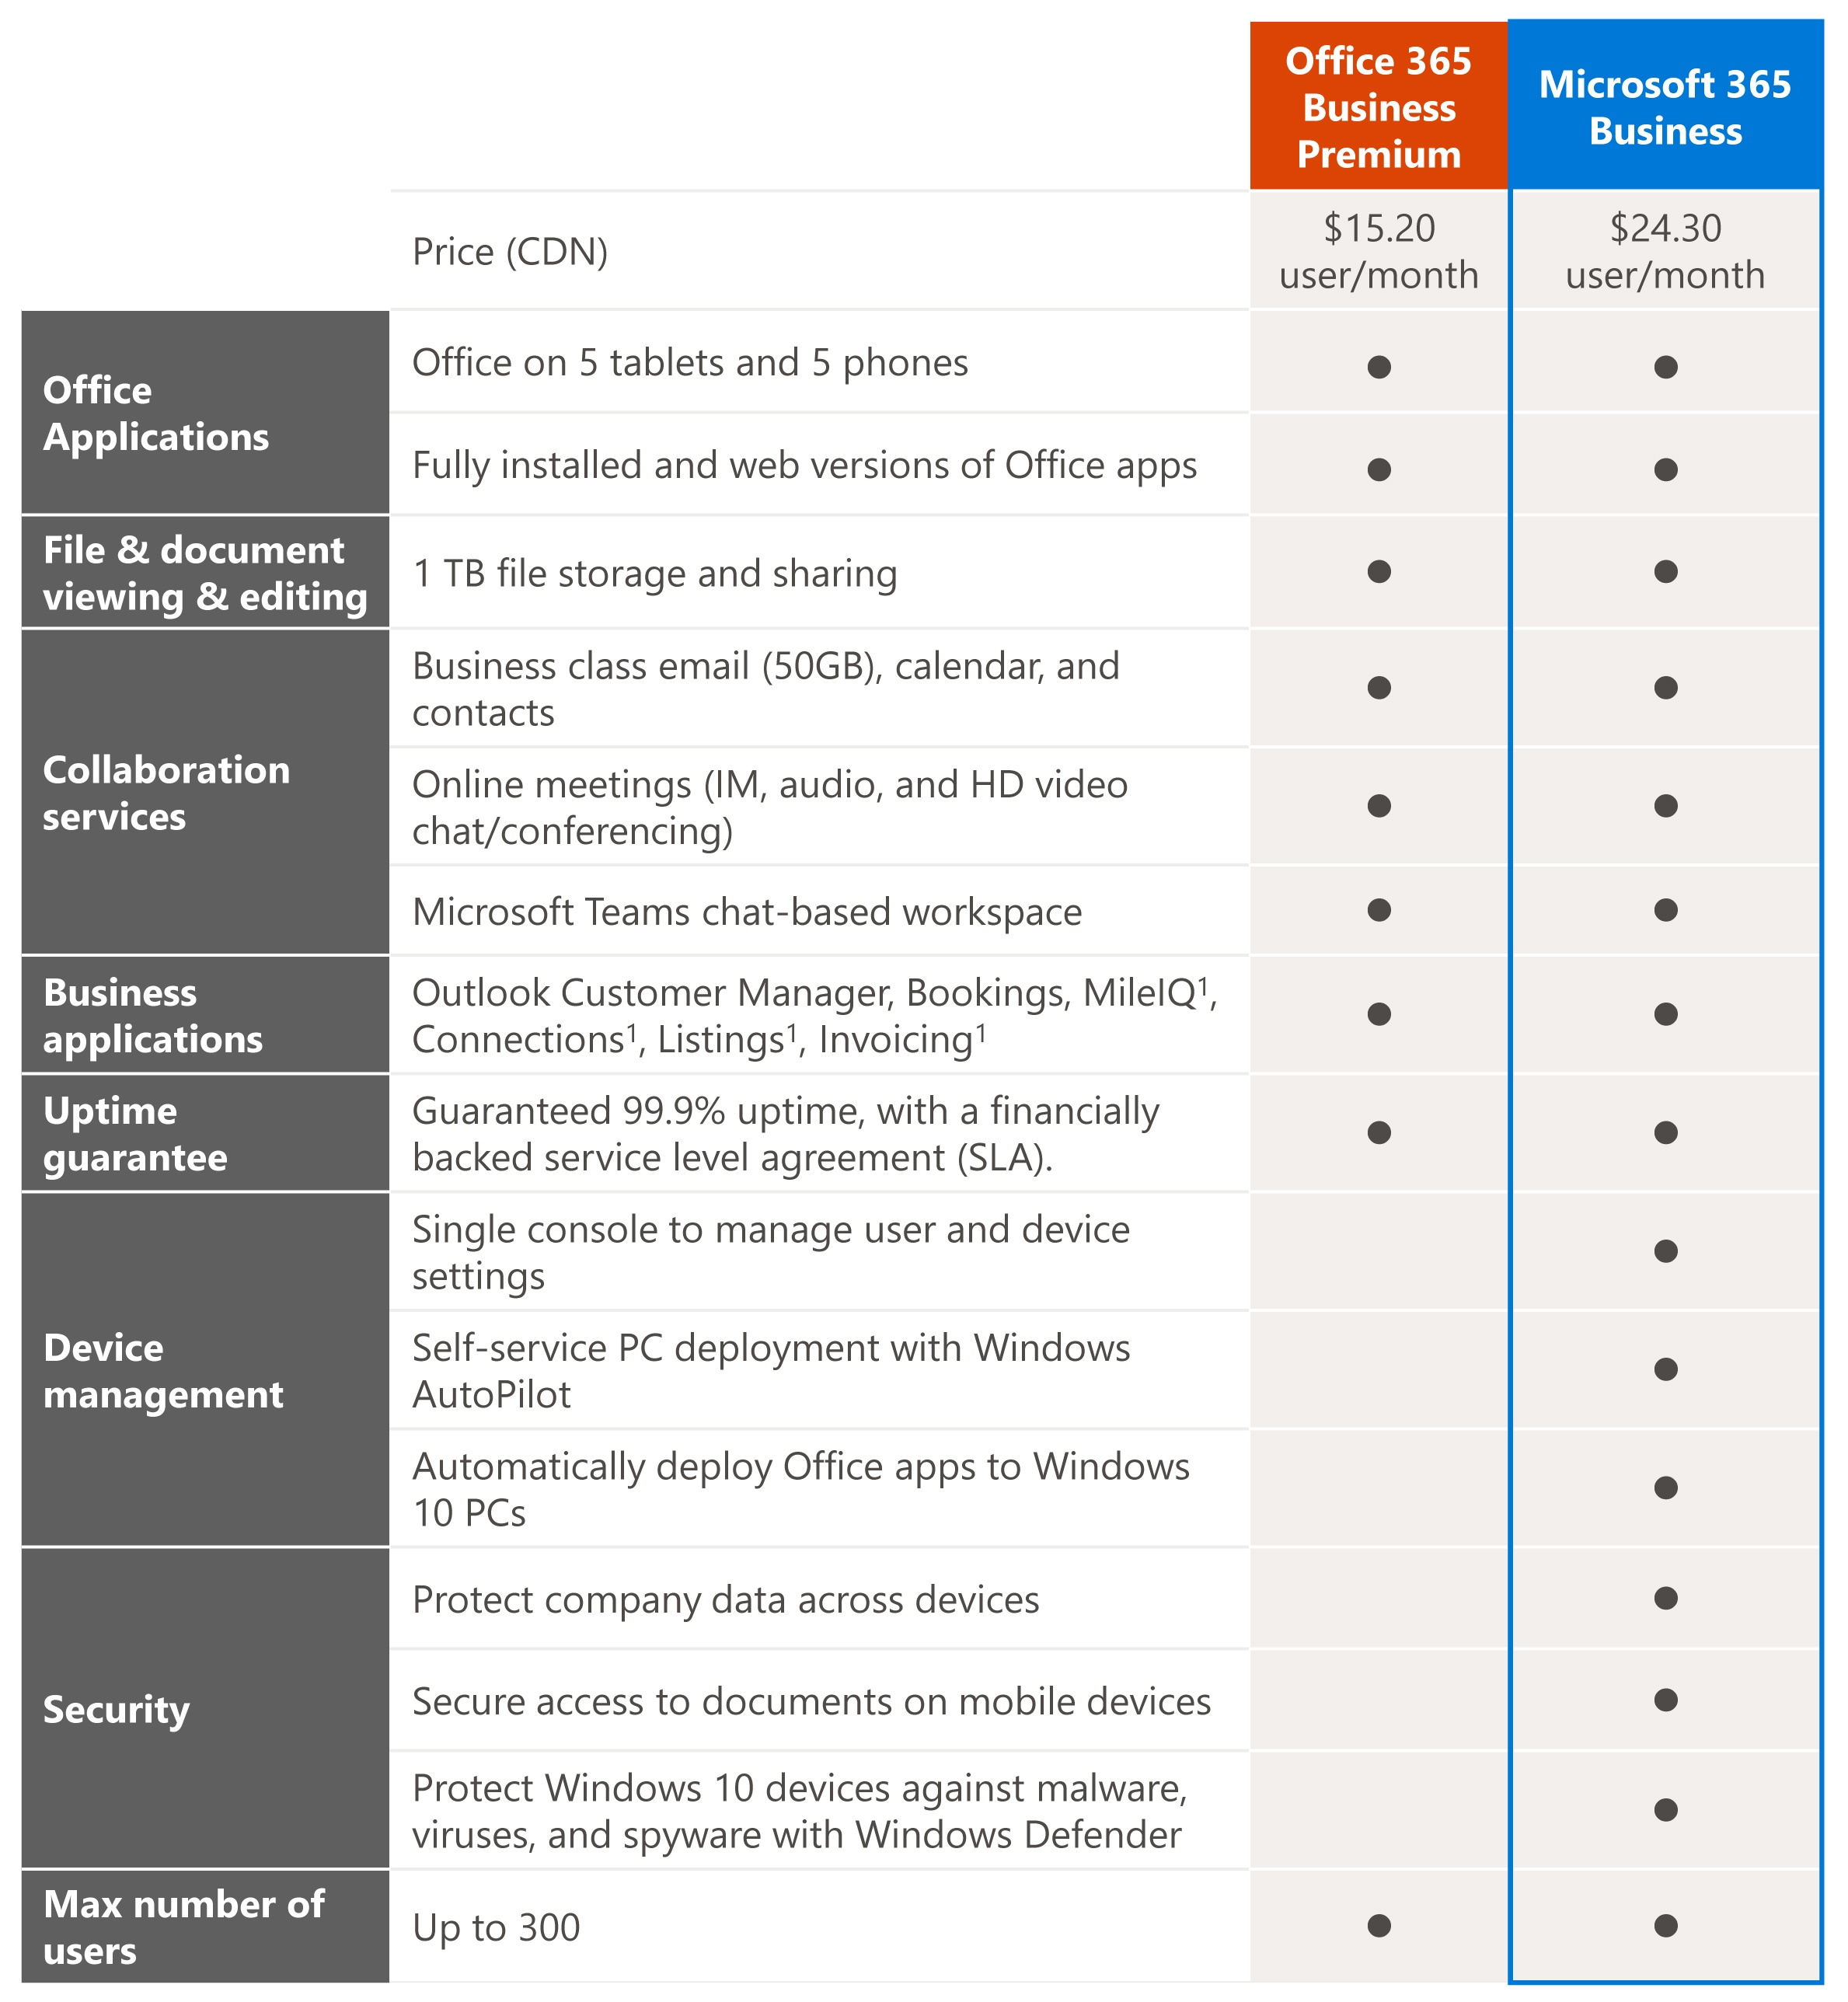 Office 365 Business Premium vs. Microsoft 365 Business